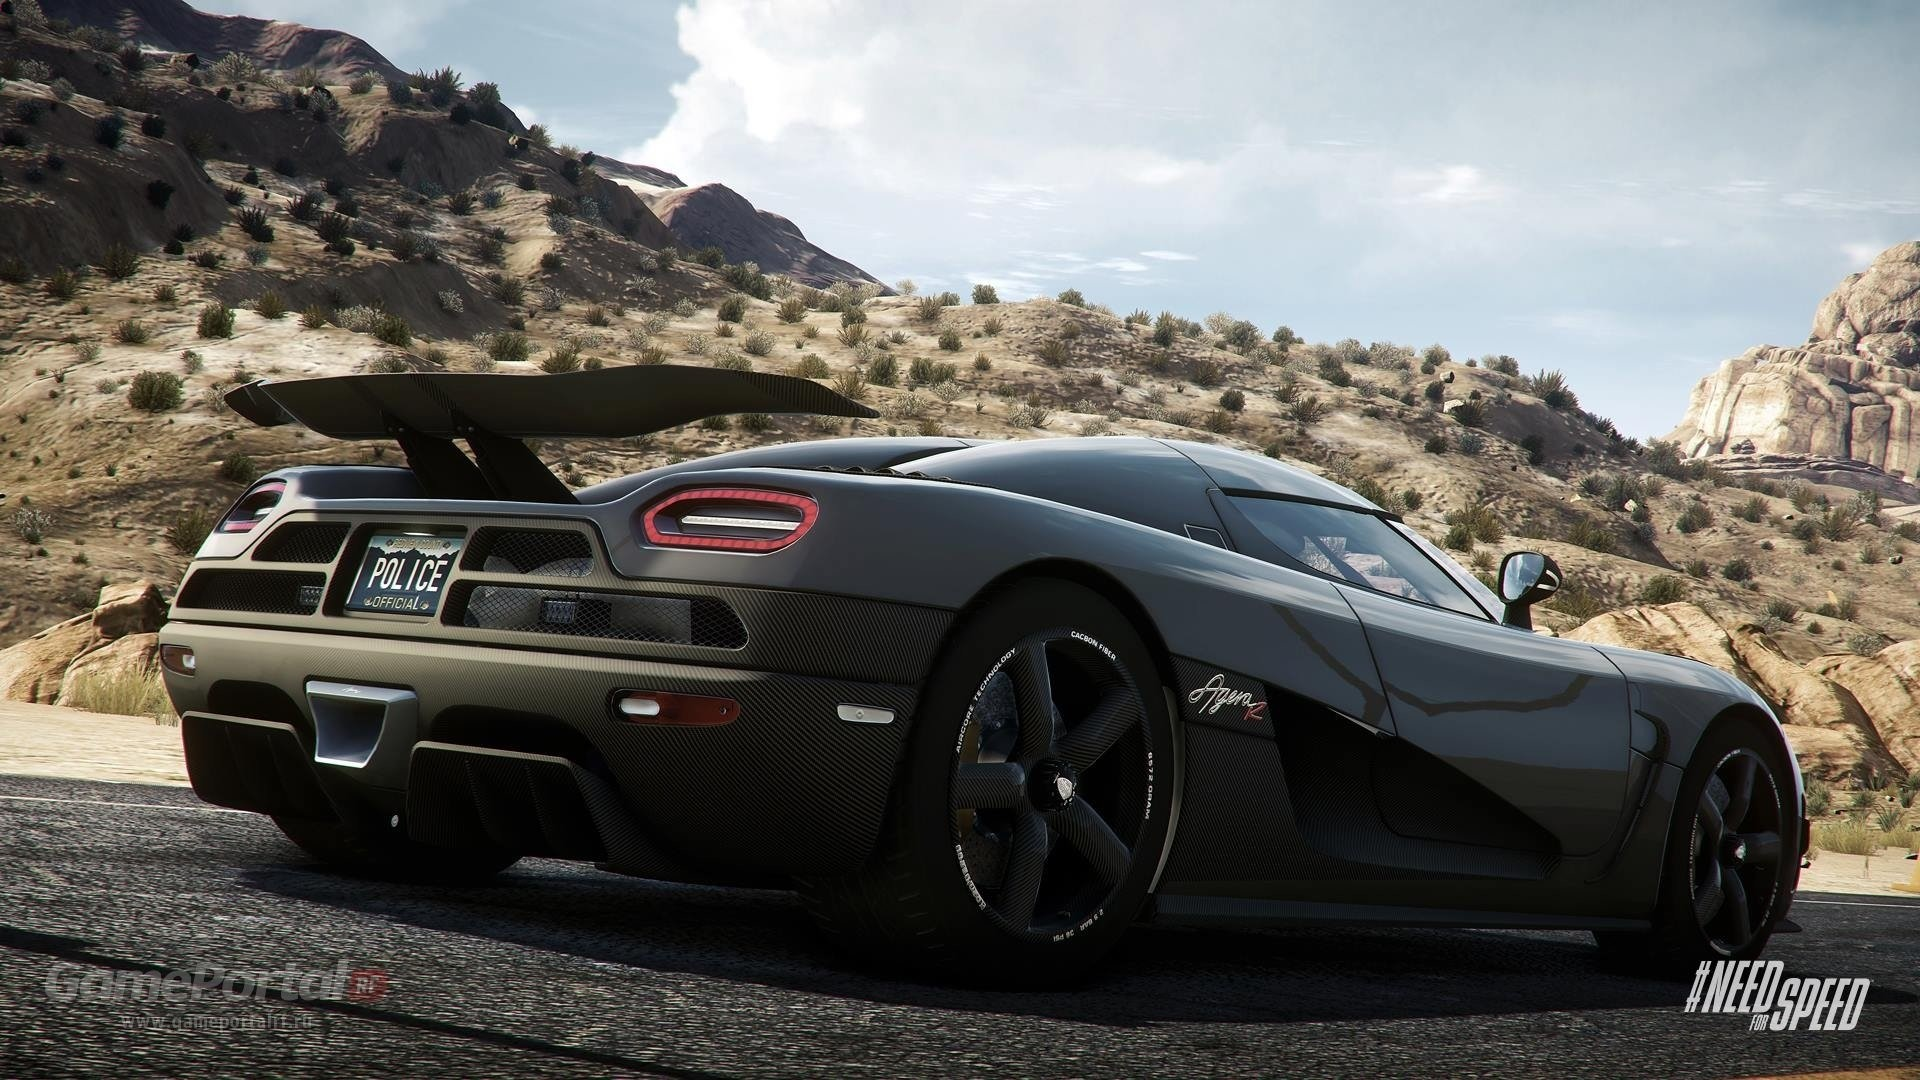 Video Game – Need For Speed: Rivals Wallpaper. Download! Next Wallpaper ·  Prev Wallpaper. Koenigsegg Agera R